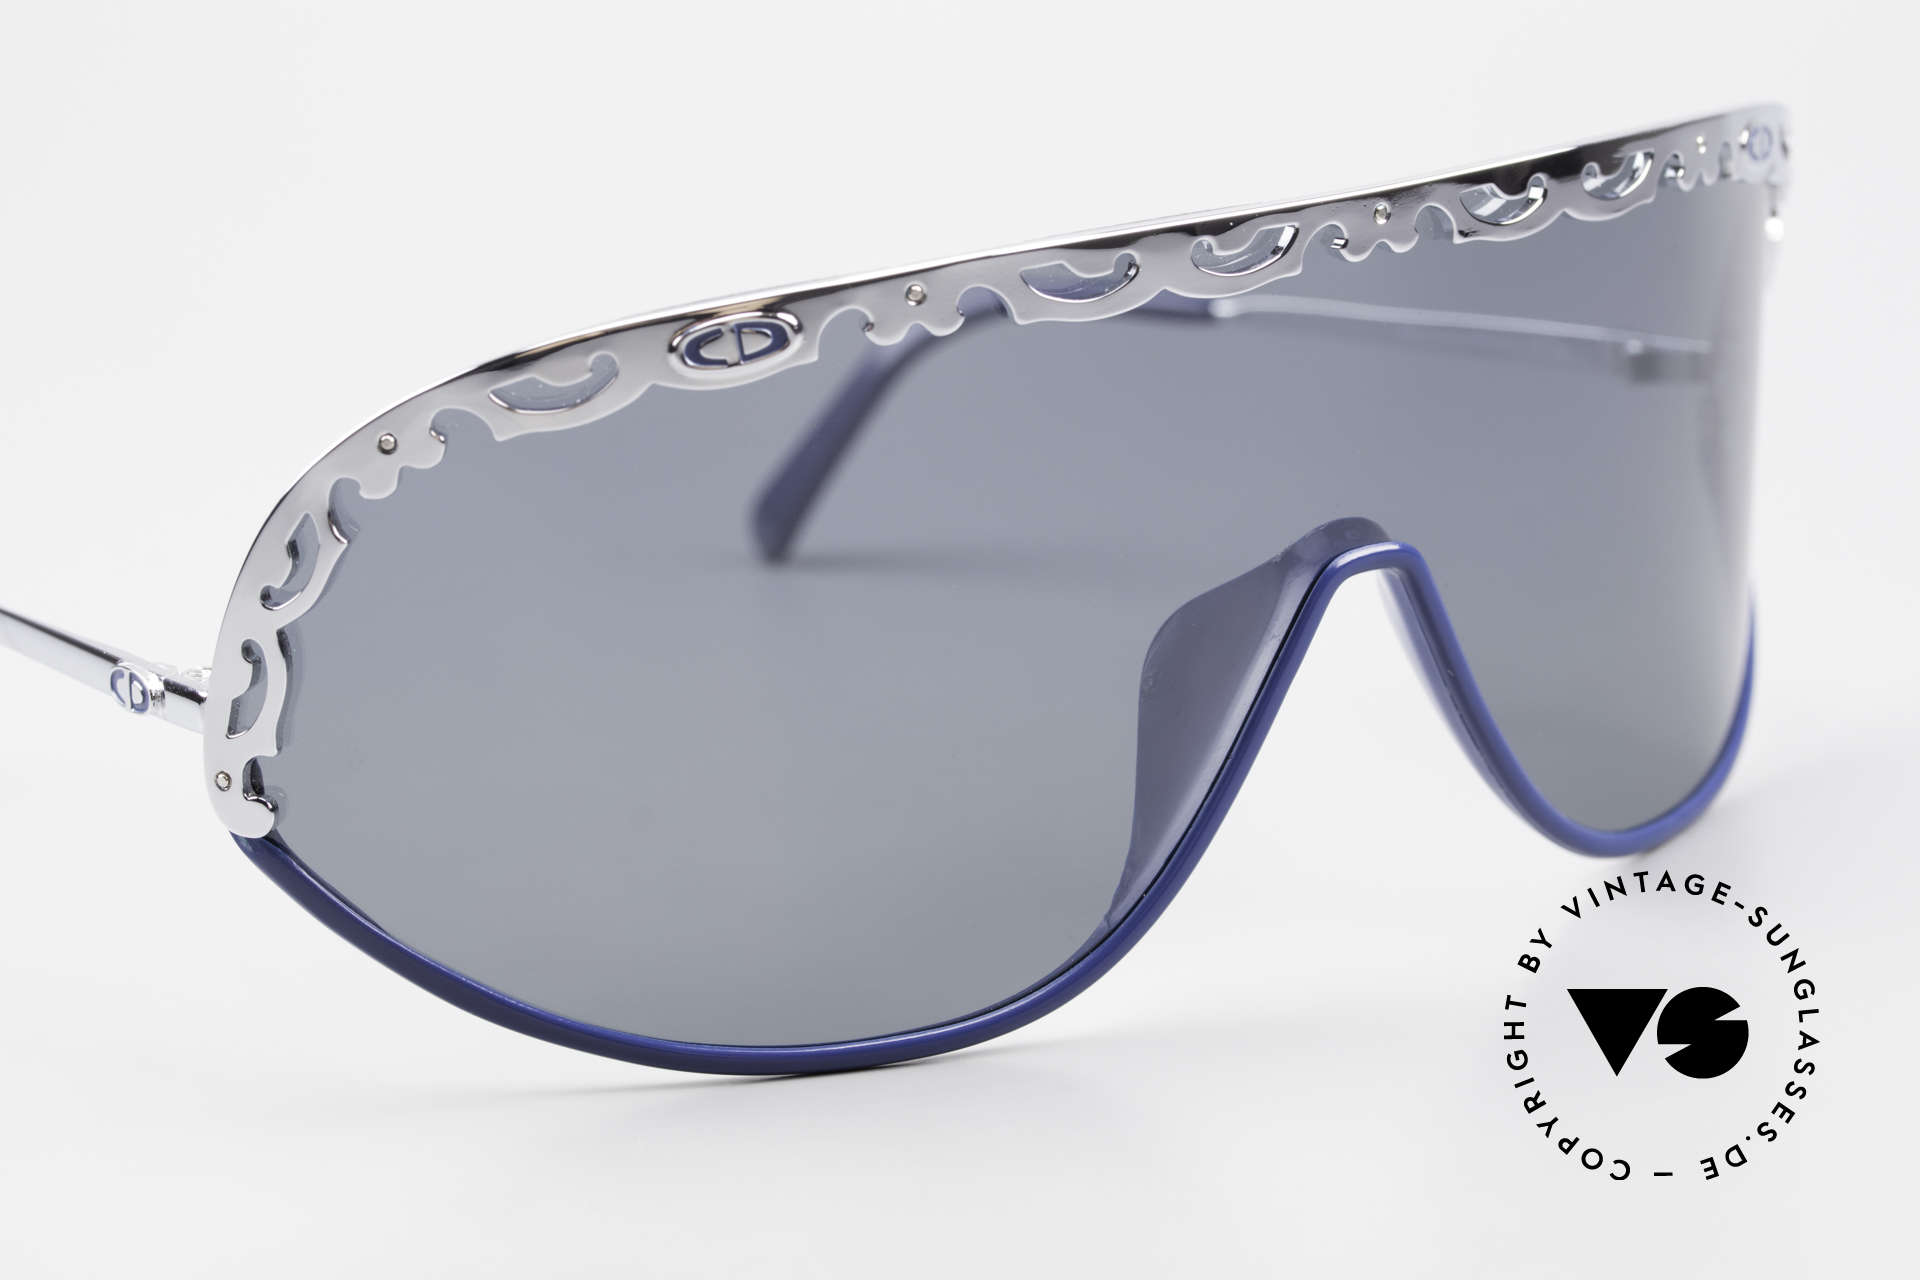 Christian Dior 2501 Panorama View Shades 80s 90s, NO RETRO sunglasses, but a 30 years old vintage rarity, Made for Women